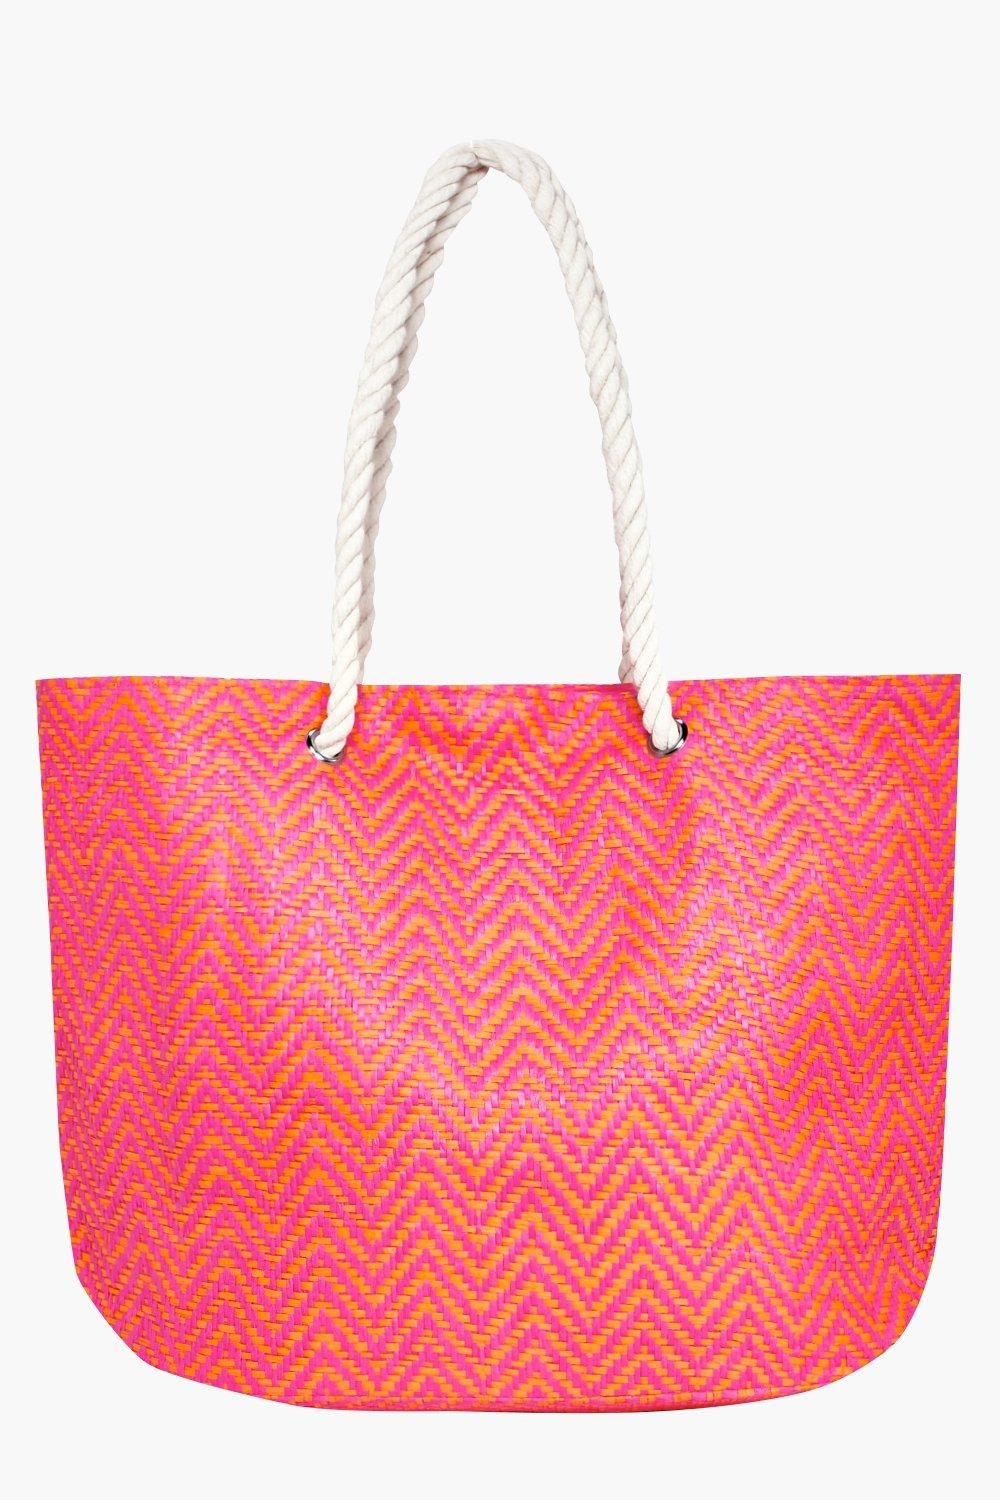 Straw Weave Beach Bag - pink - Esme Straw Weave Be